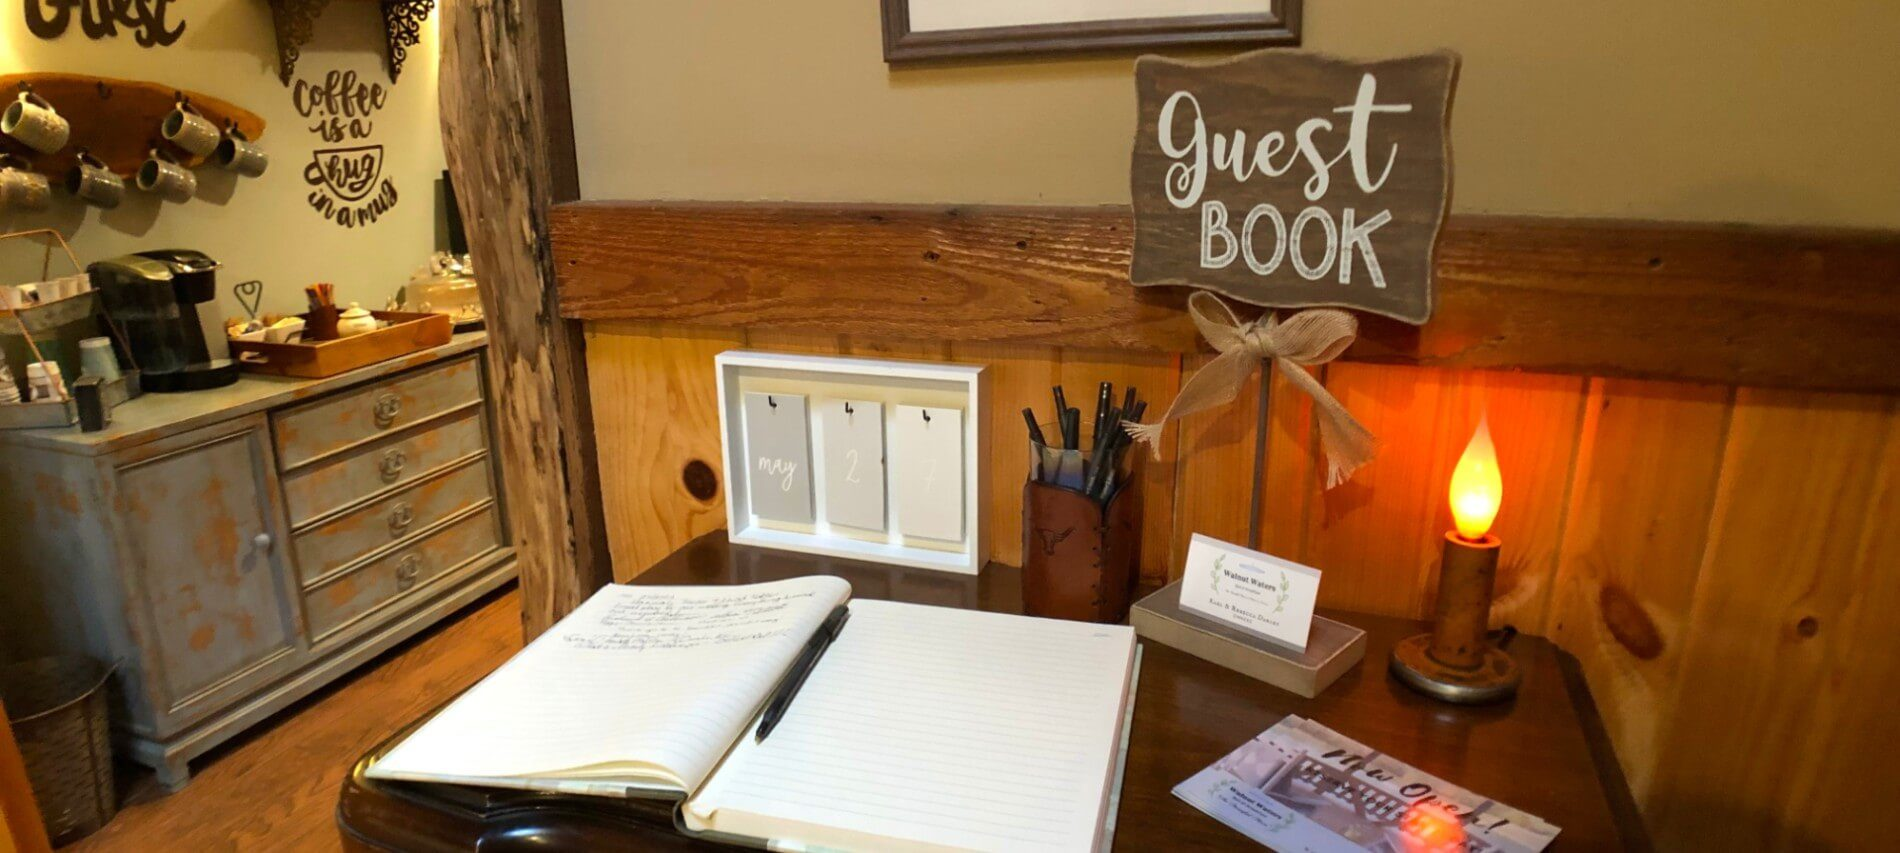 Open guest book lying on a dark wood table